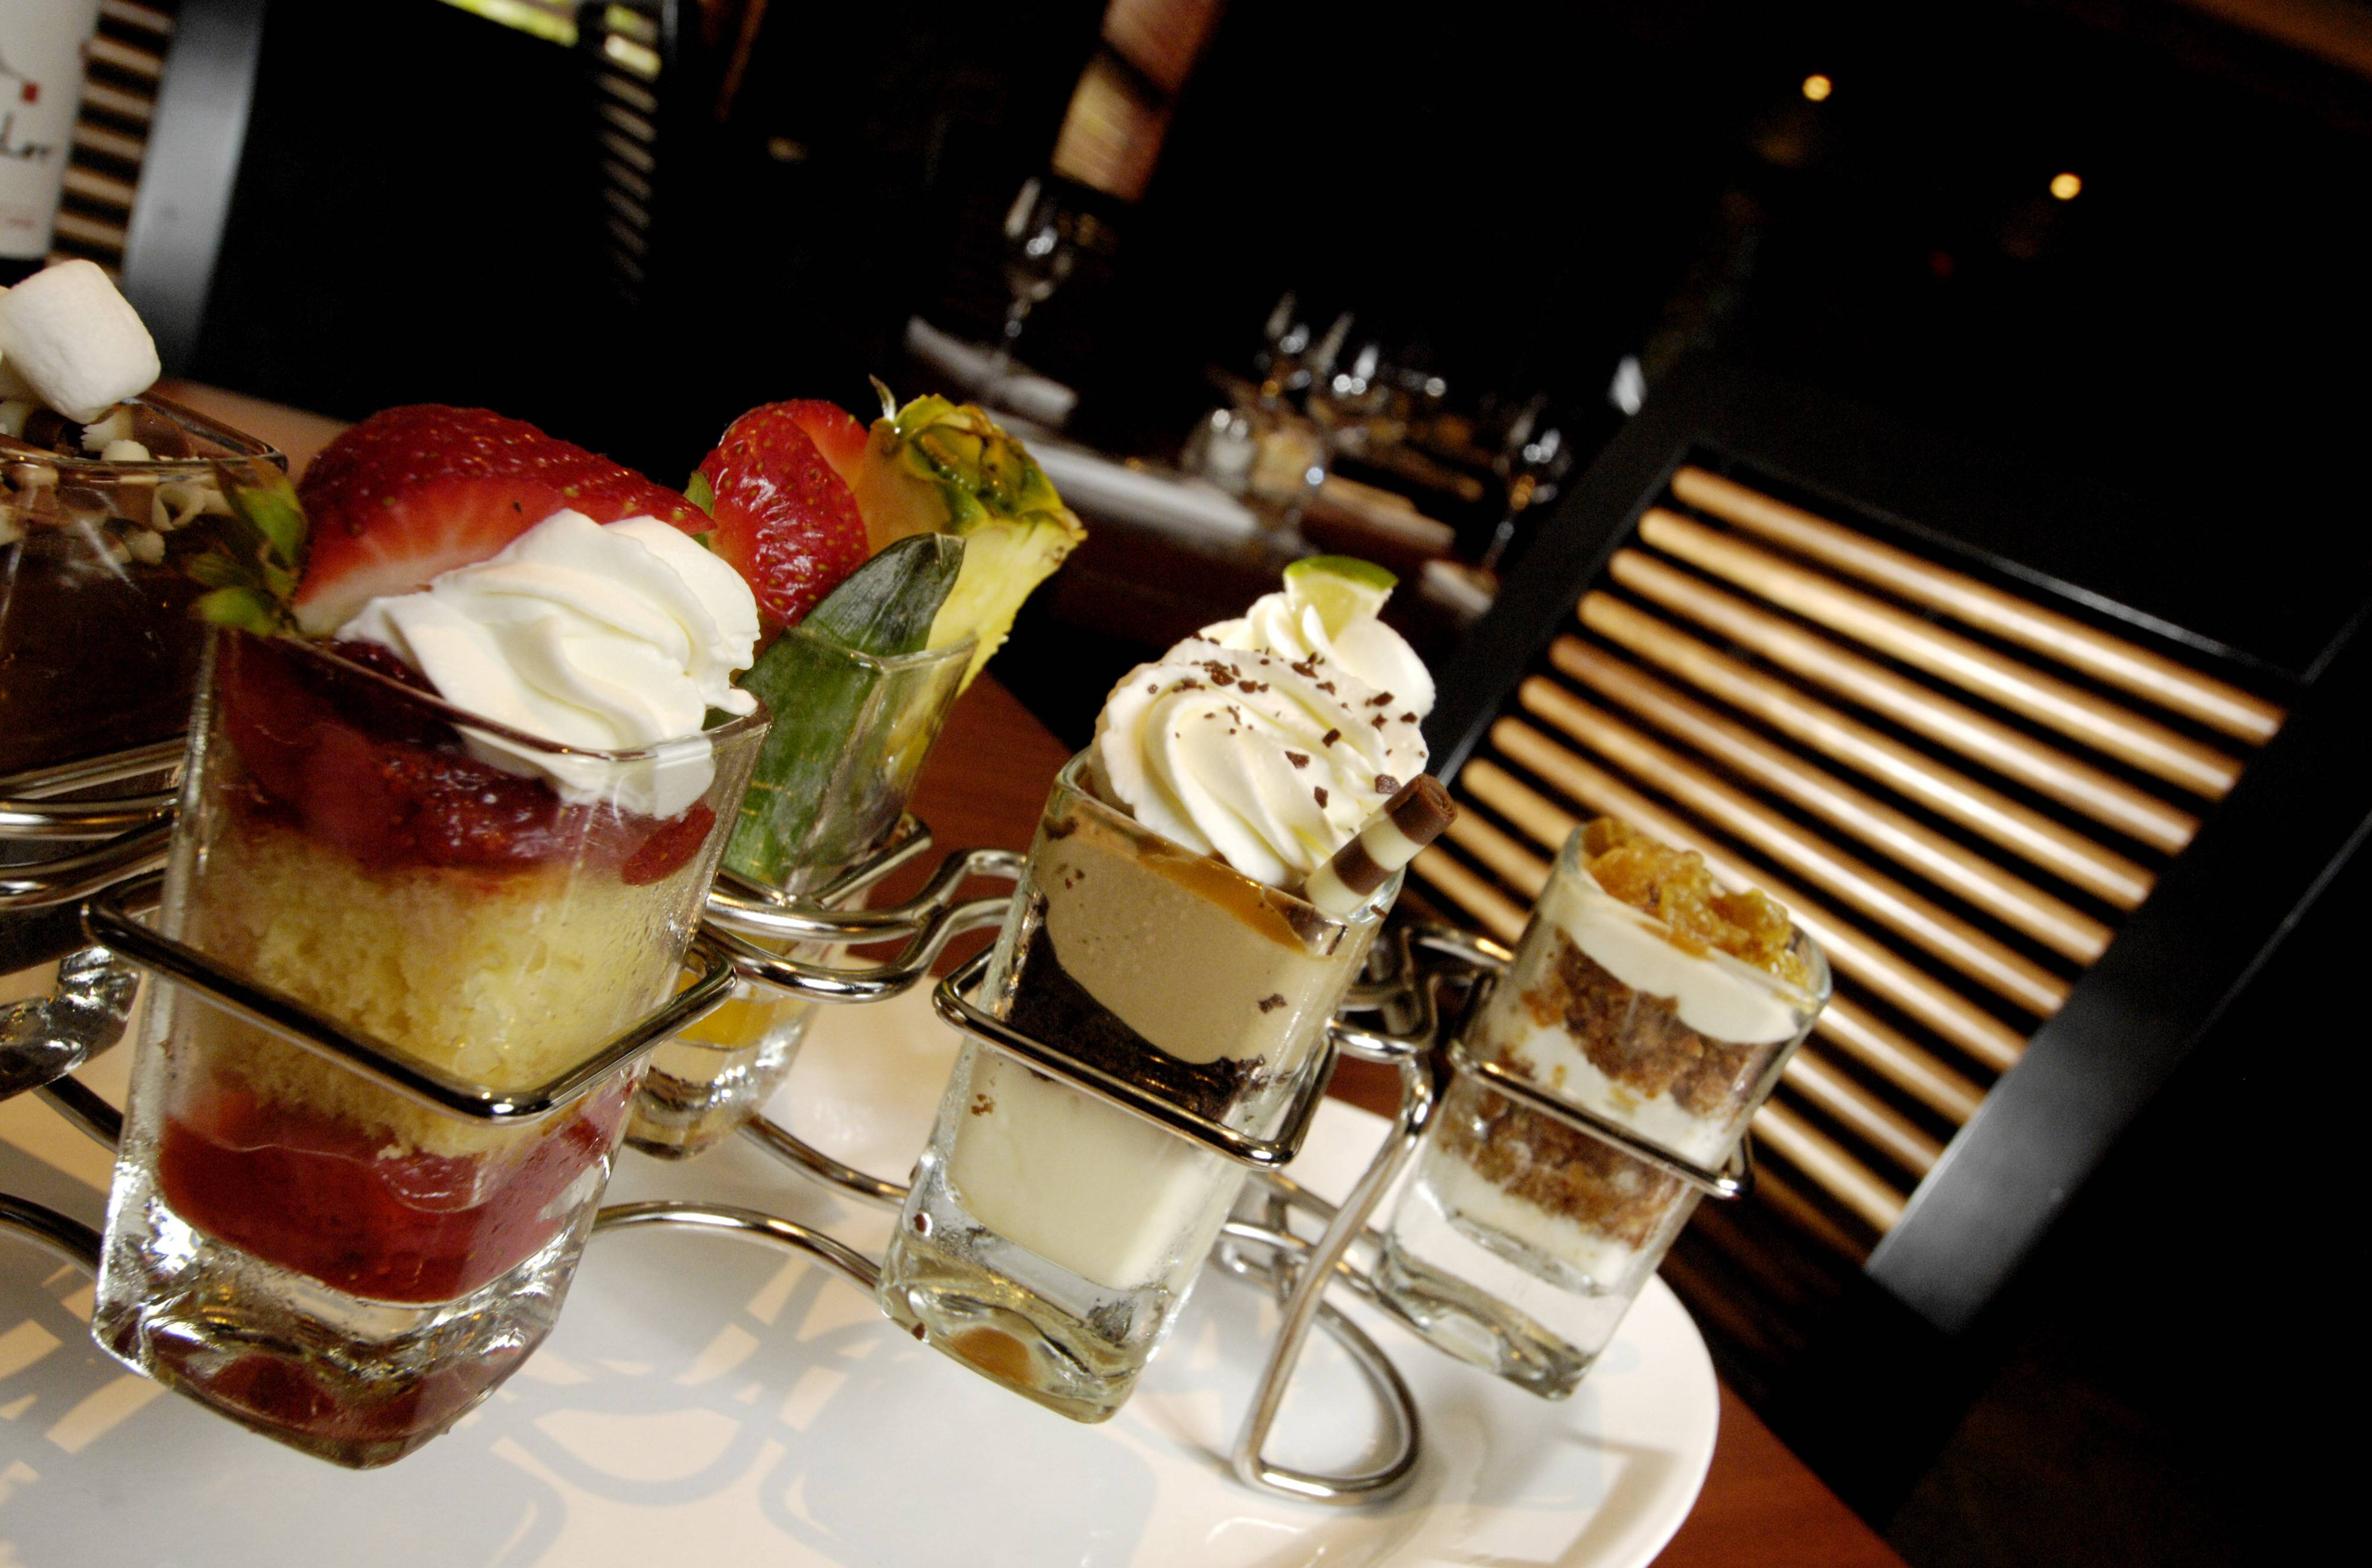 Seasons 52's mini indulgence desserts are available at lunch or dinner during Chicago Northwest Restaurant Week.